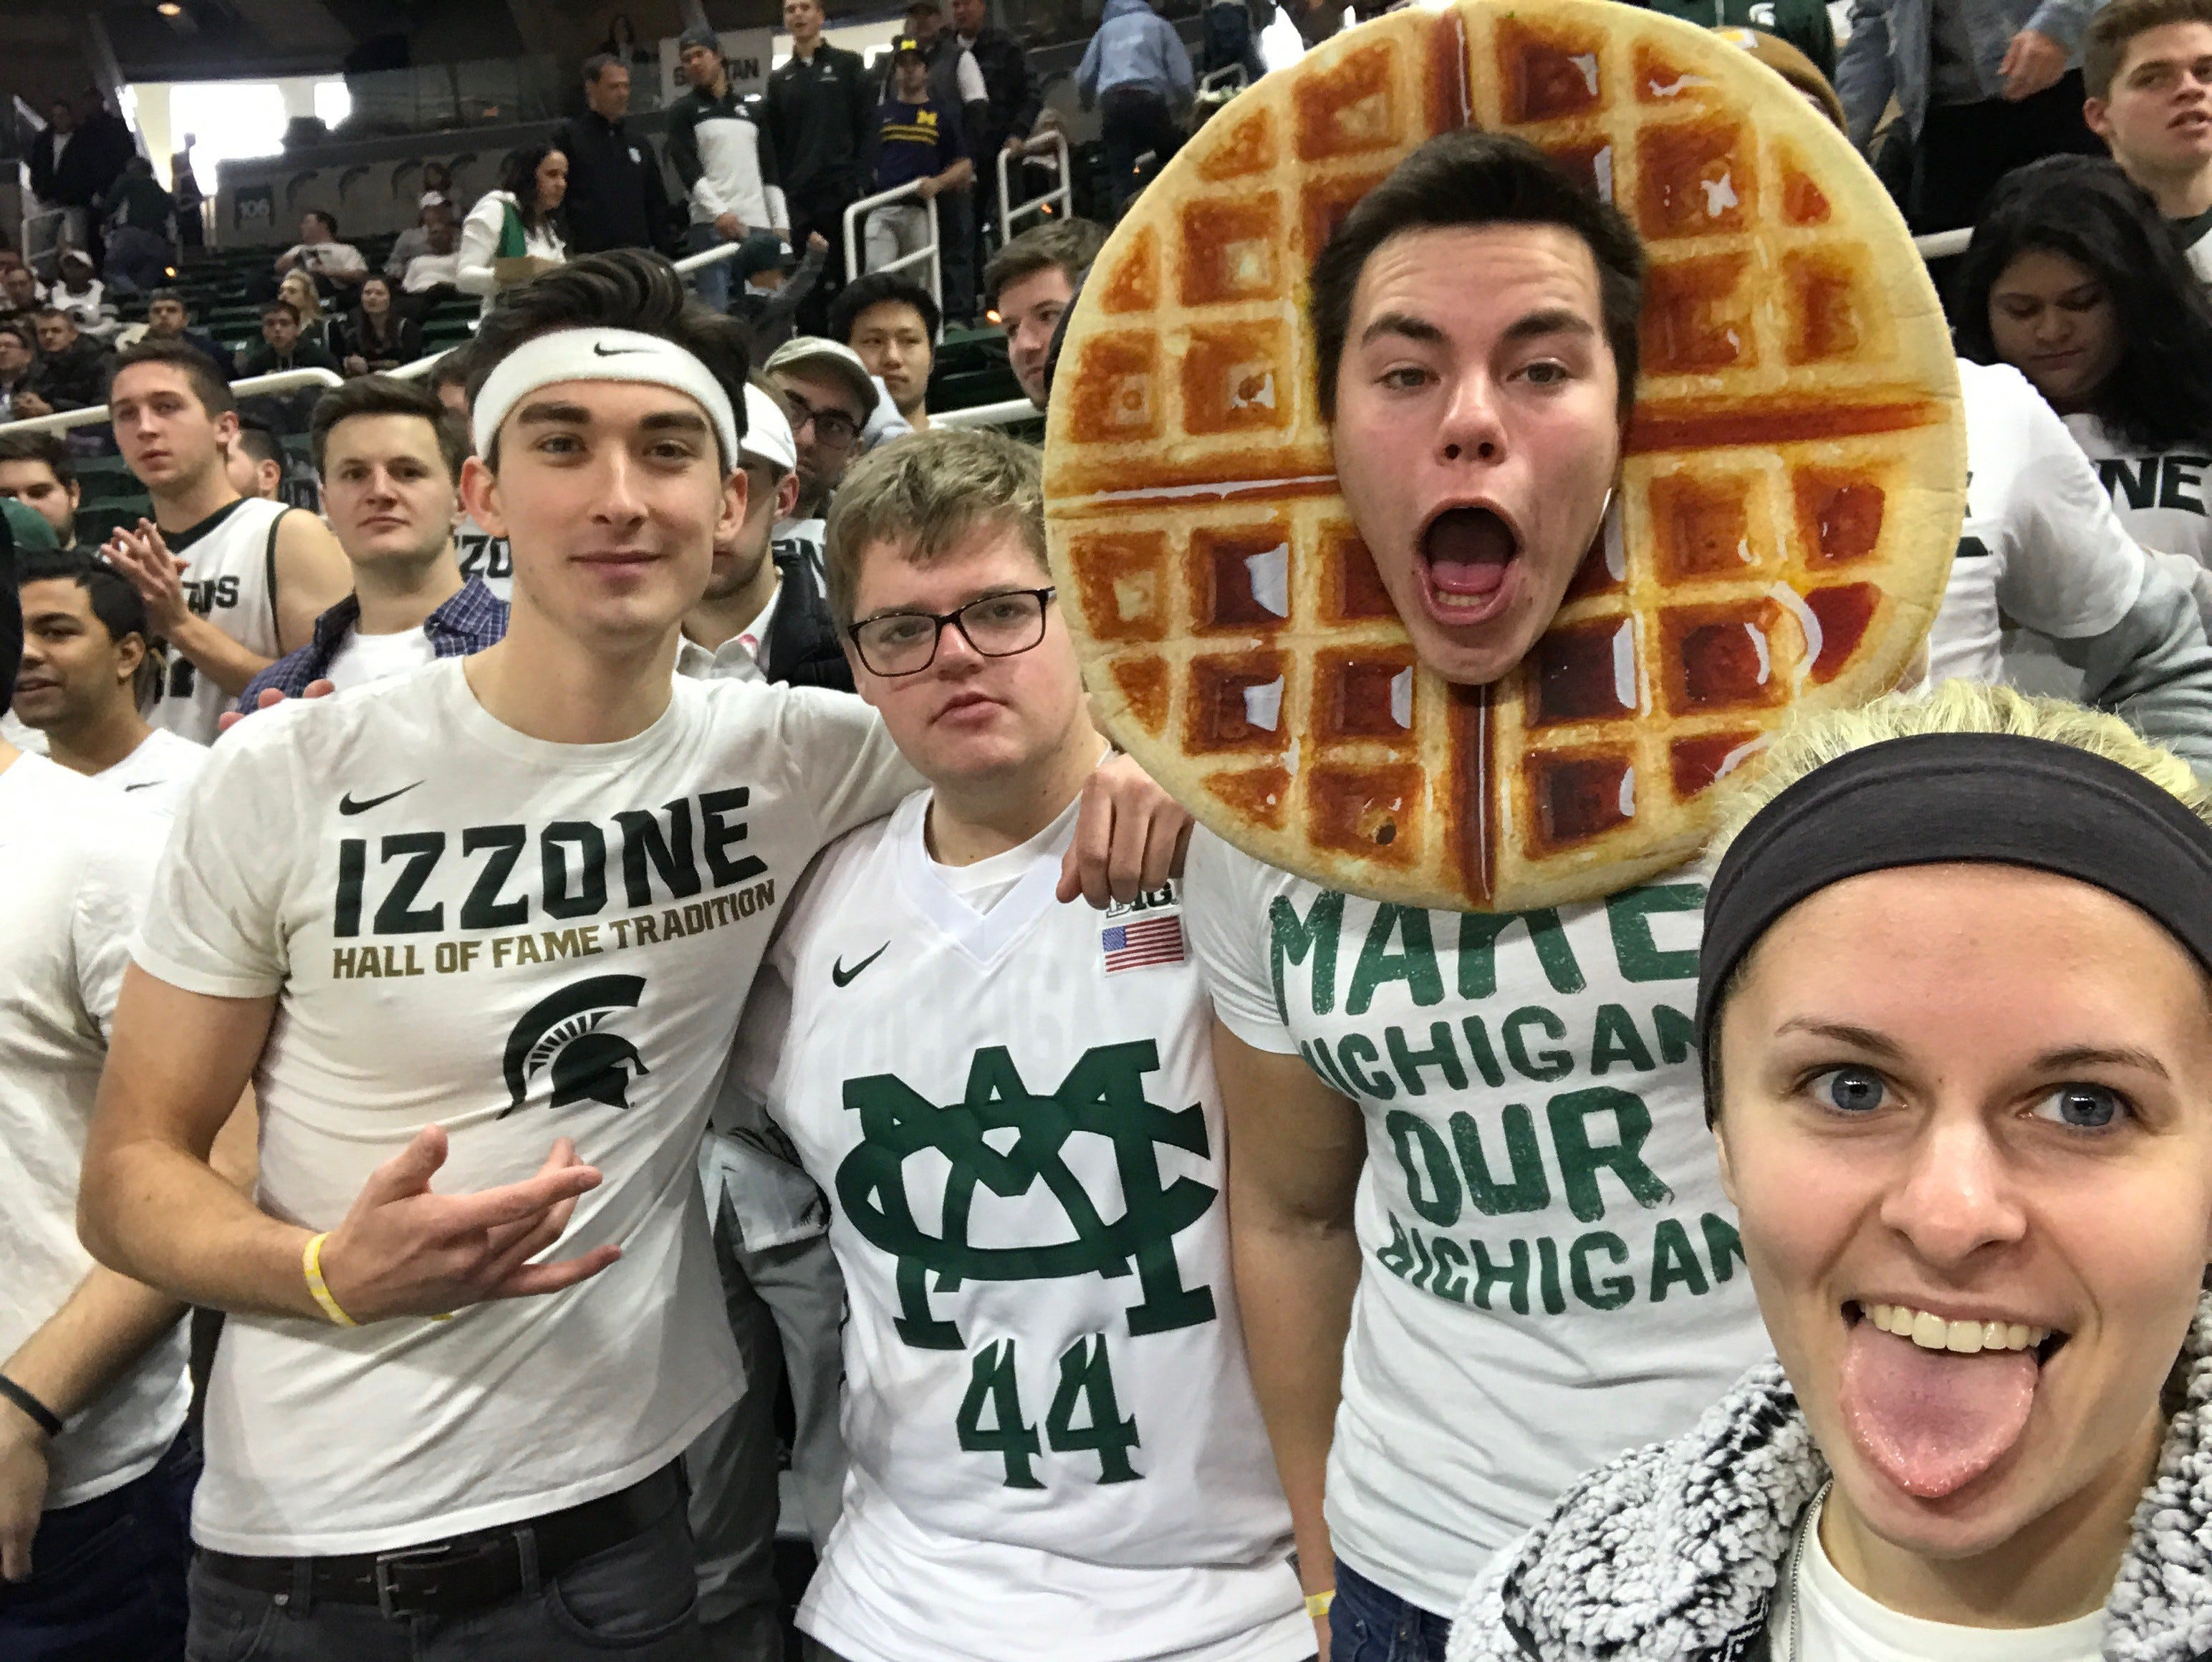 Nathan 'Waffle Guy' Guzowski received a few minutes of ESPN airtime March 9 during Michigan State's home basketball game against Michigan. Guzowski, 22, is an MSU senior from Livonia who is expected to graduate this spring.